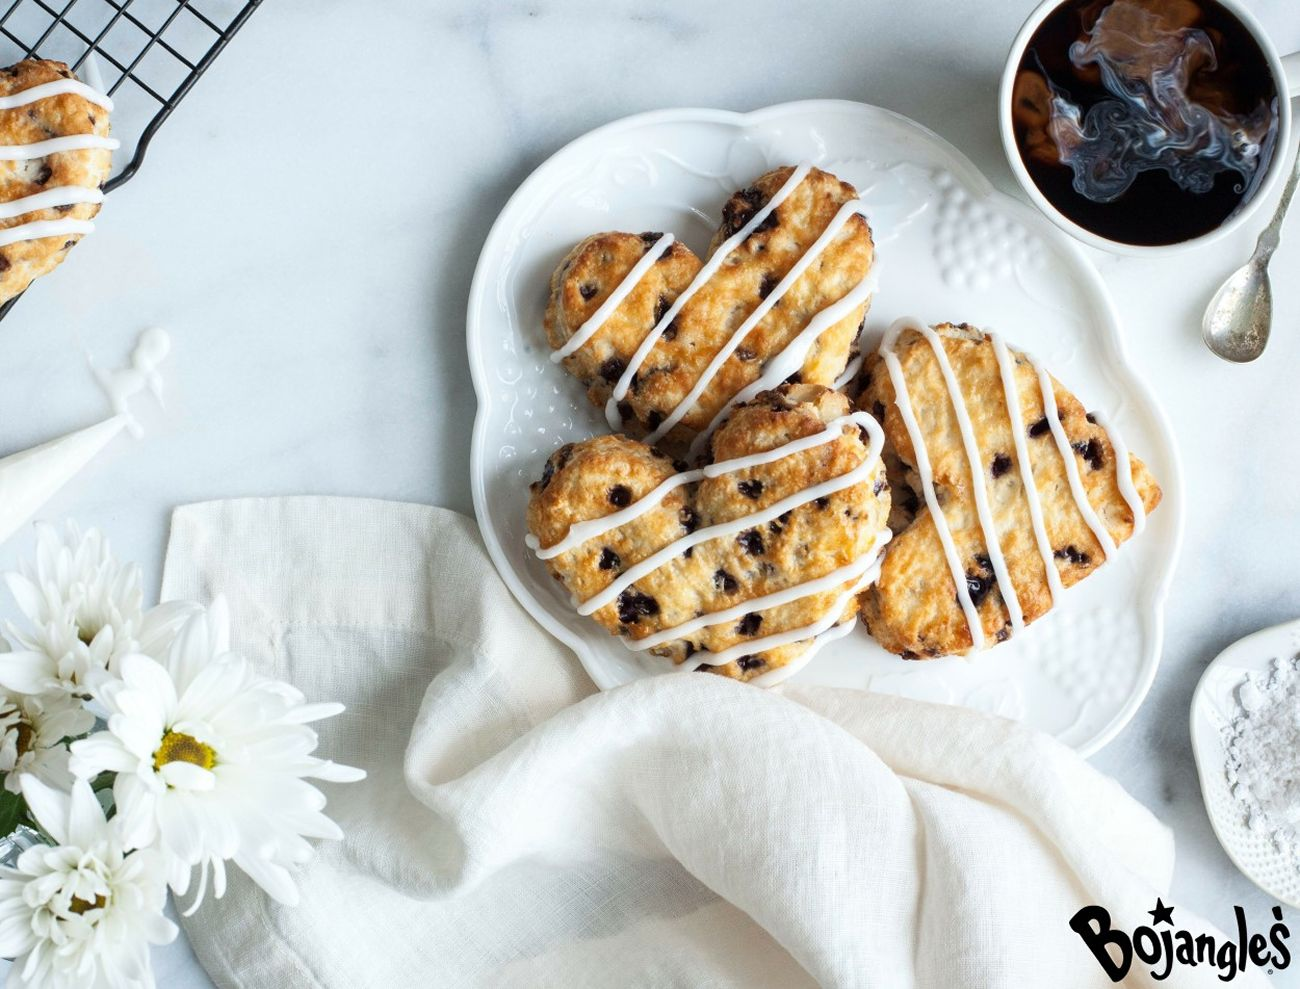 Make it a Magical Mother's Day with Bojangles' Heart-Shaped Bo-Berry Biscuits